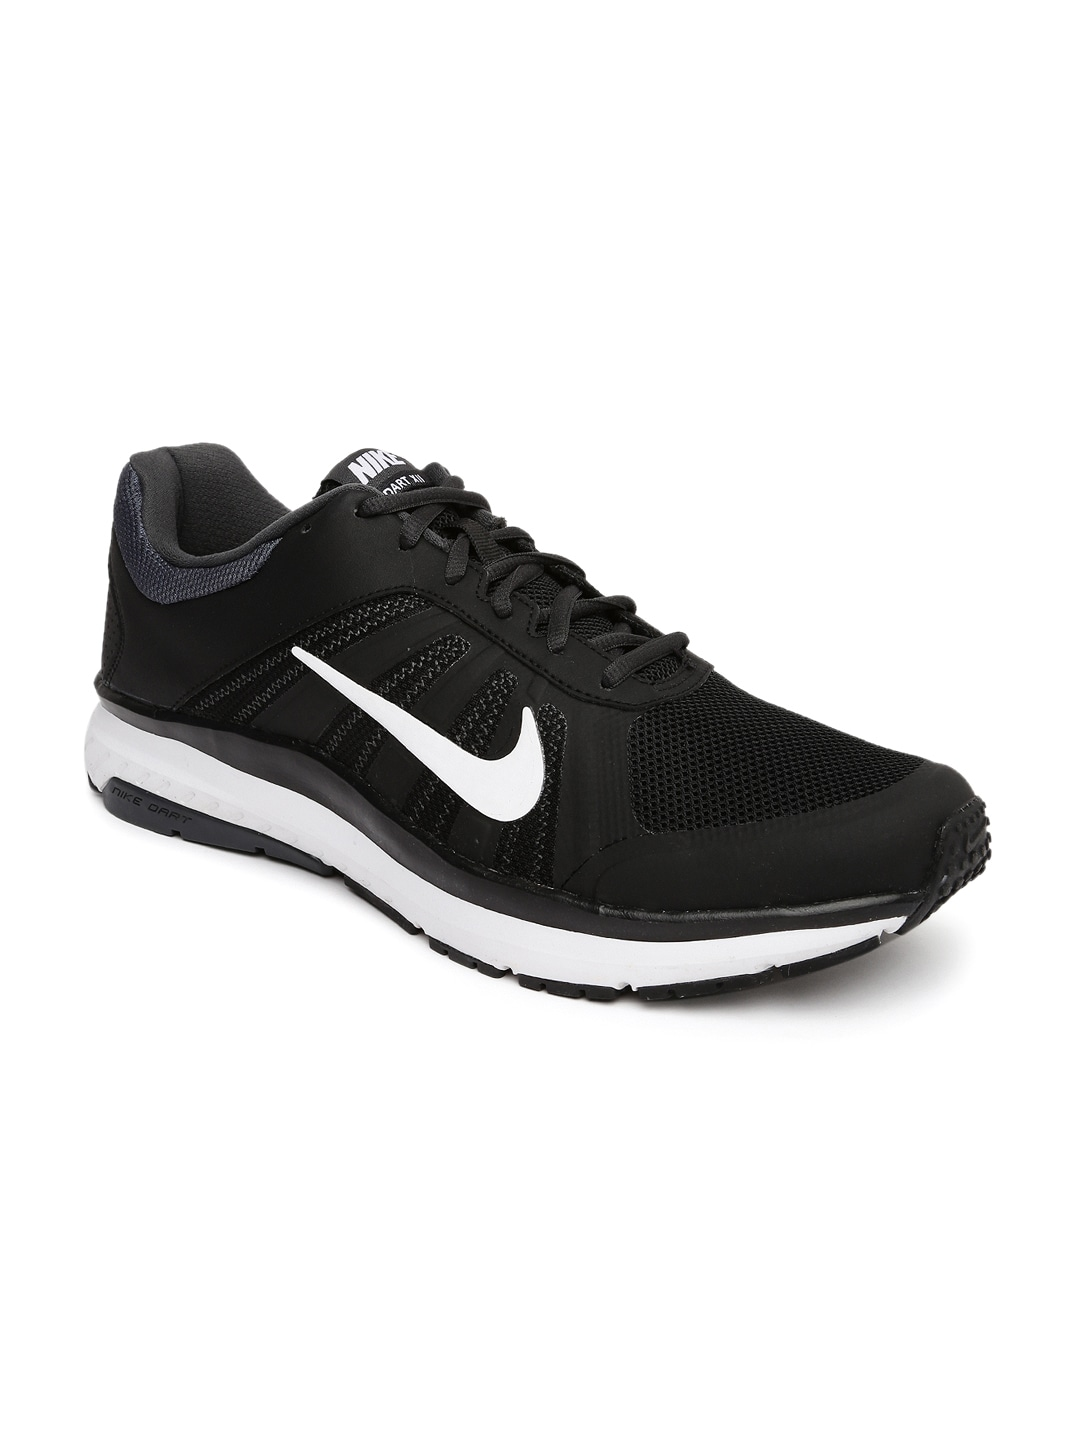 low priced dba06 34e35 Nike Shoes for Men - Buy Men s Nike Shoes Online   Myntra